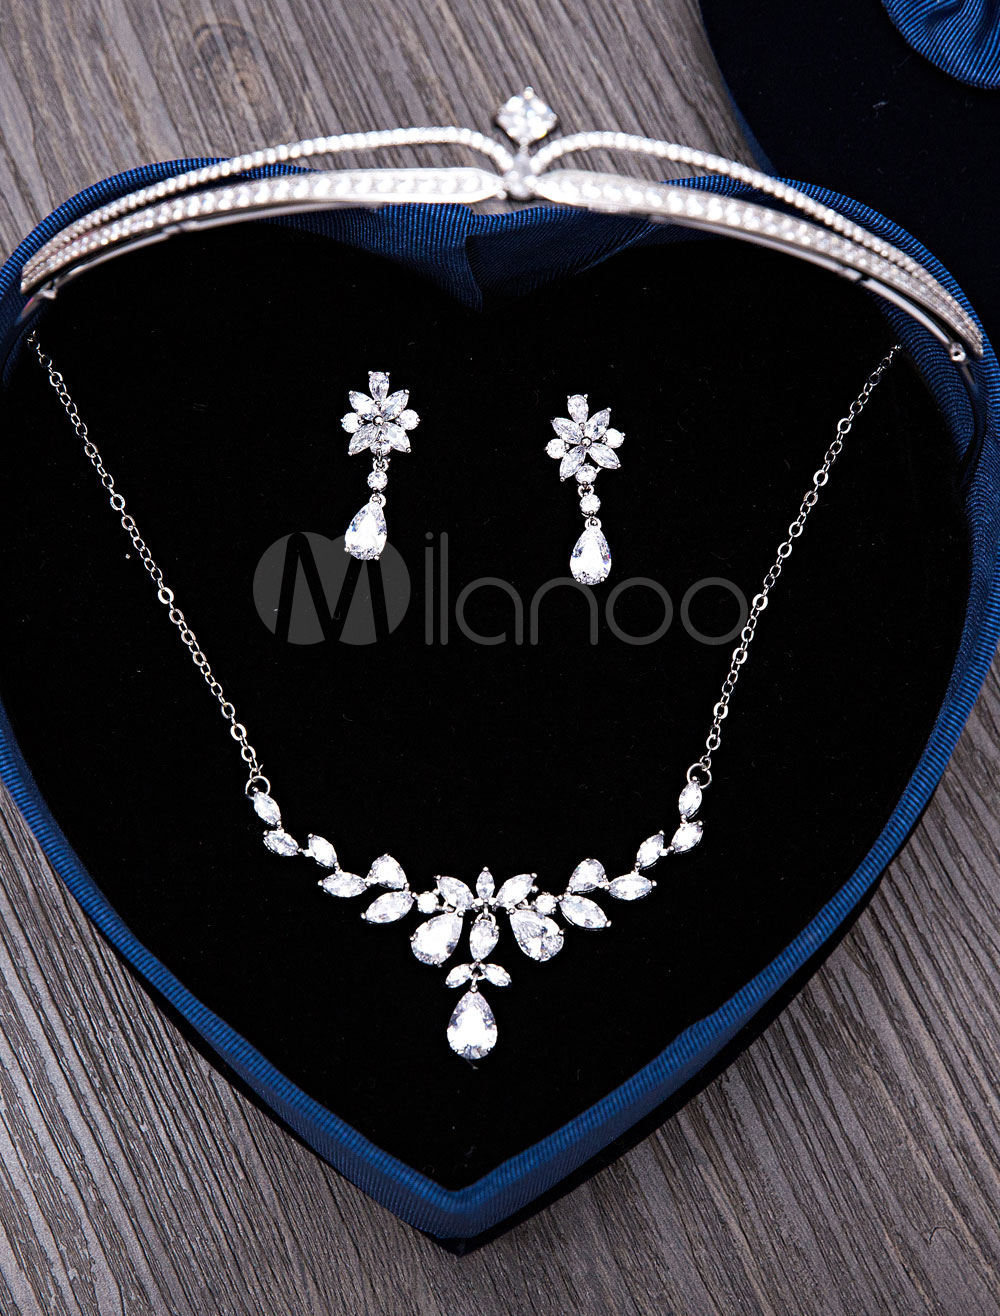 Buy Wedding Jewelry Set Silver Tiara Headpieces Bridal Pendant Necklace With Drop Earrings for $59.39 in Milanoo store